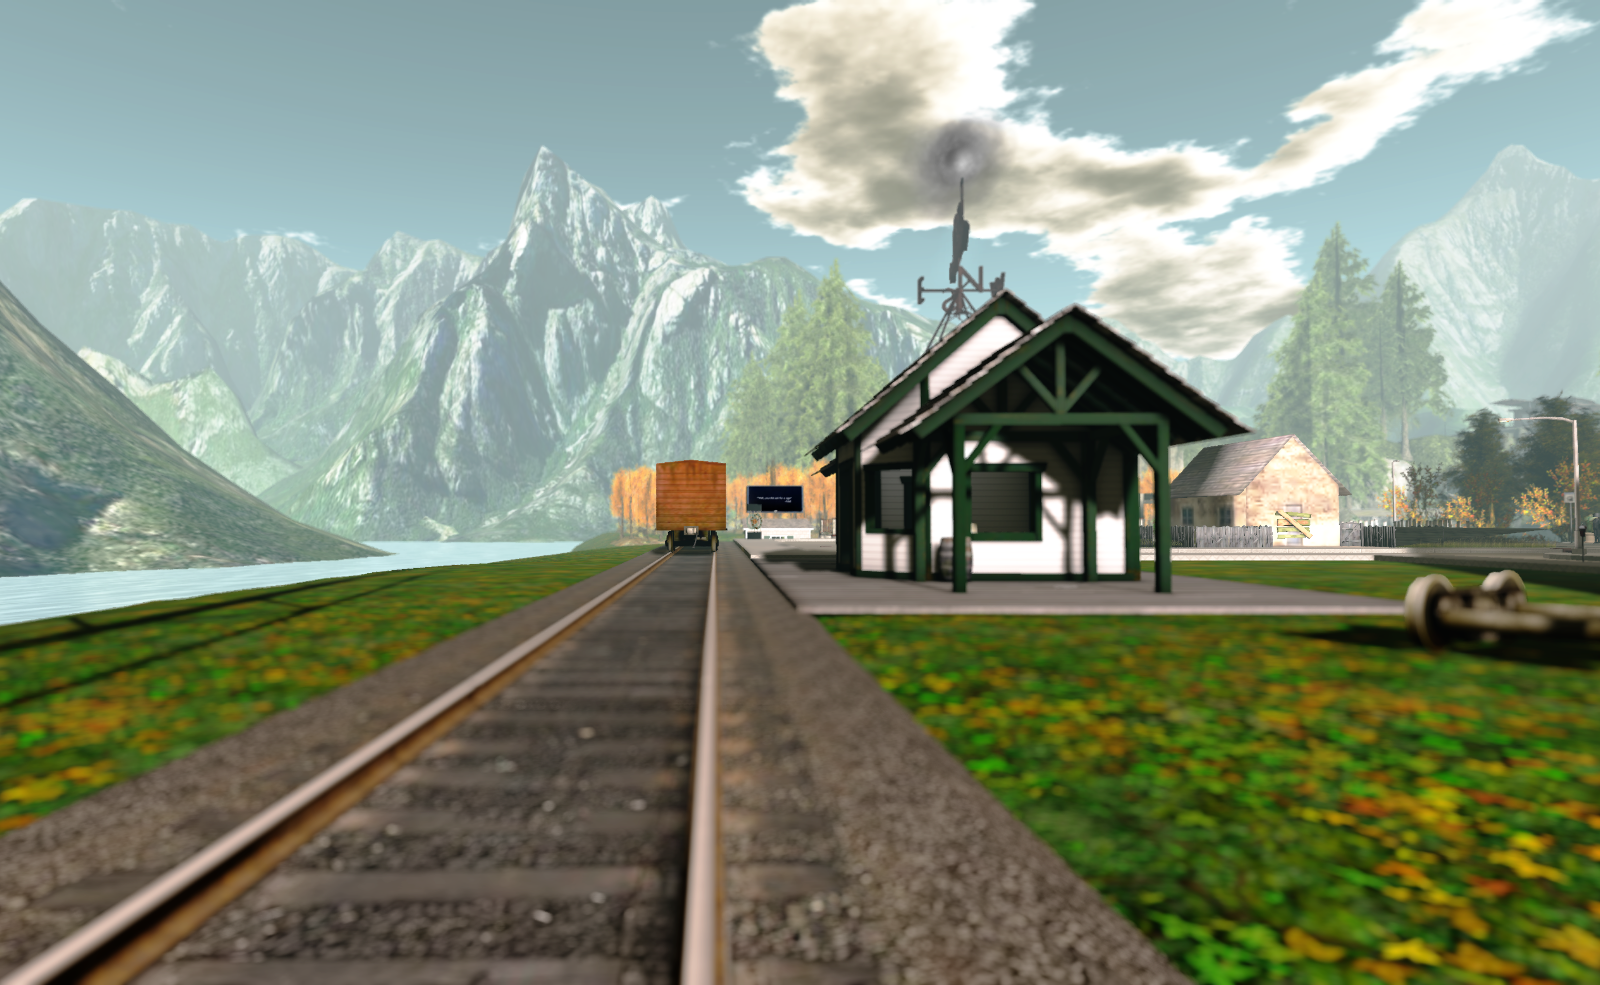 The train station at the town of Brazen Fair Ends